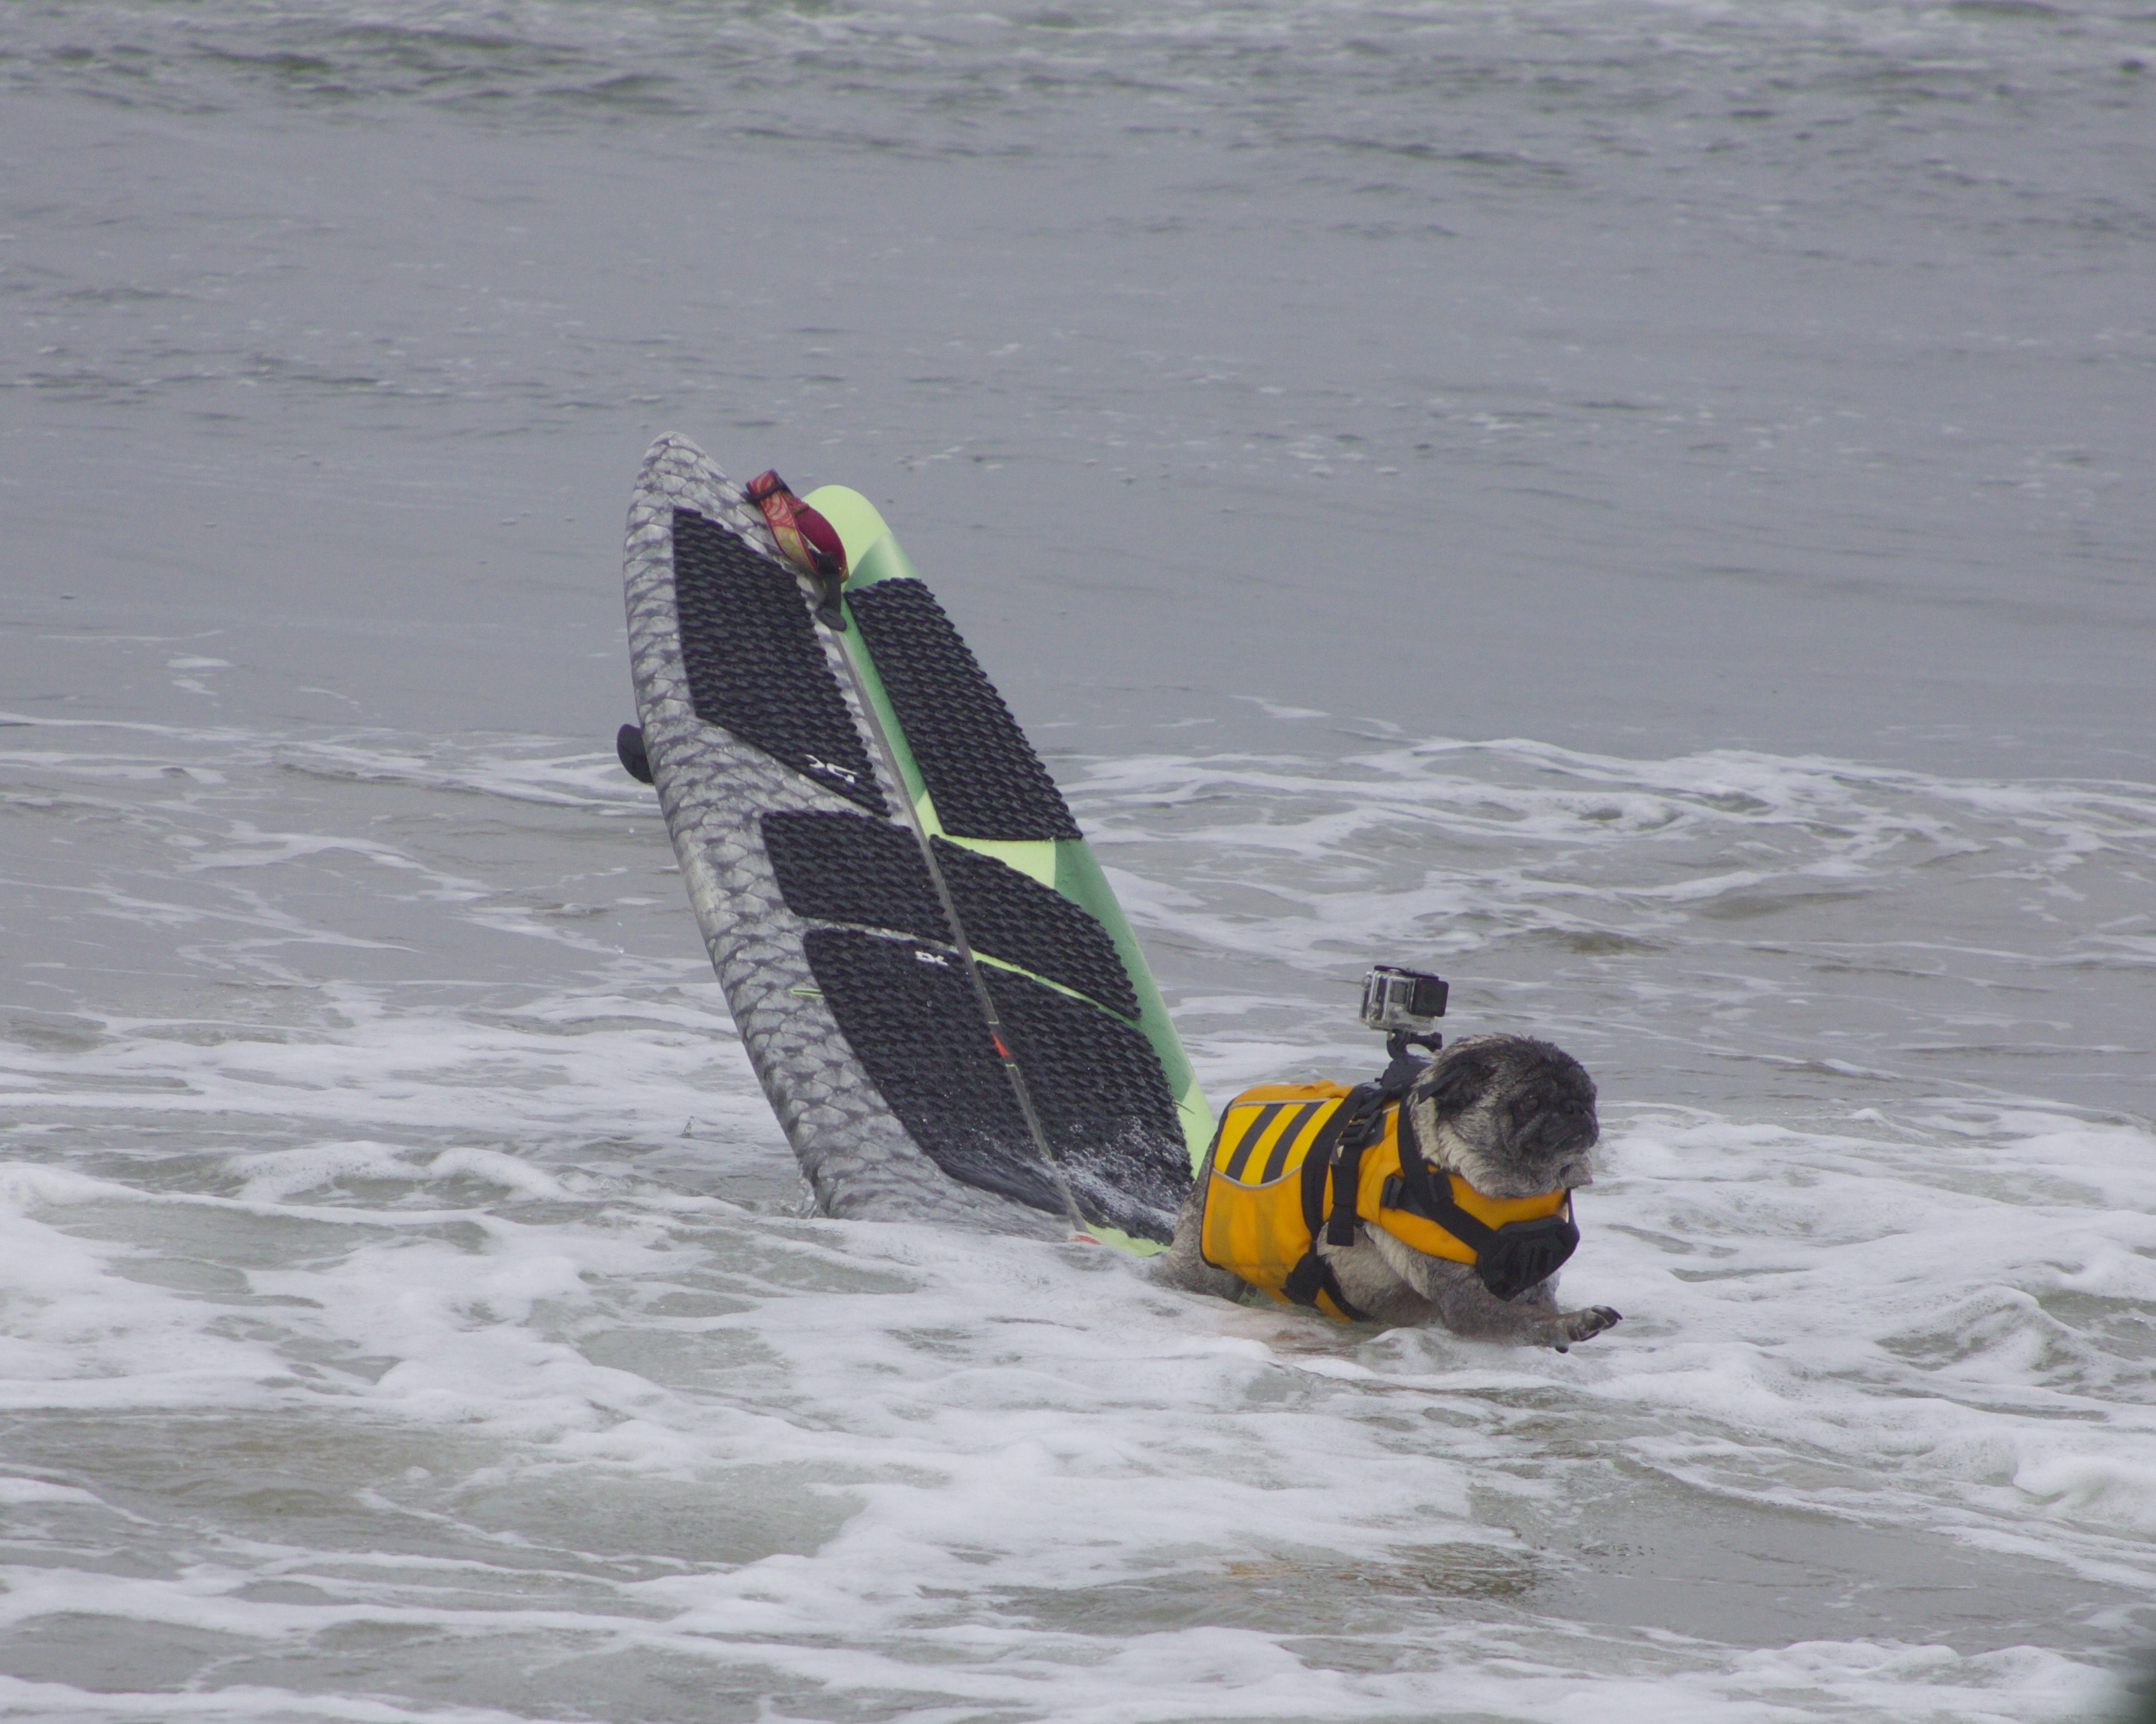 Pug In Yellow Life Jacket With Gopro Attached Dismounts Green And Grey Surfboard